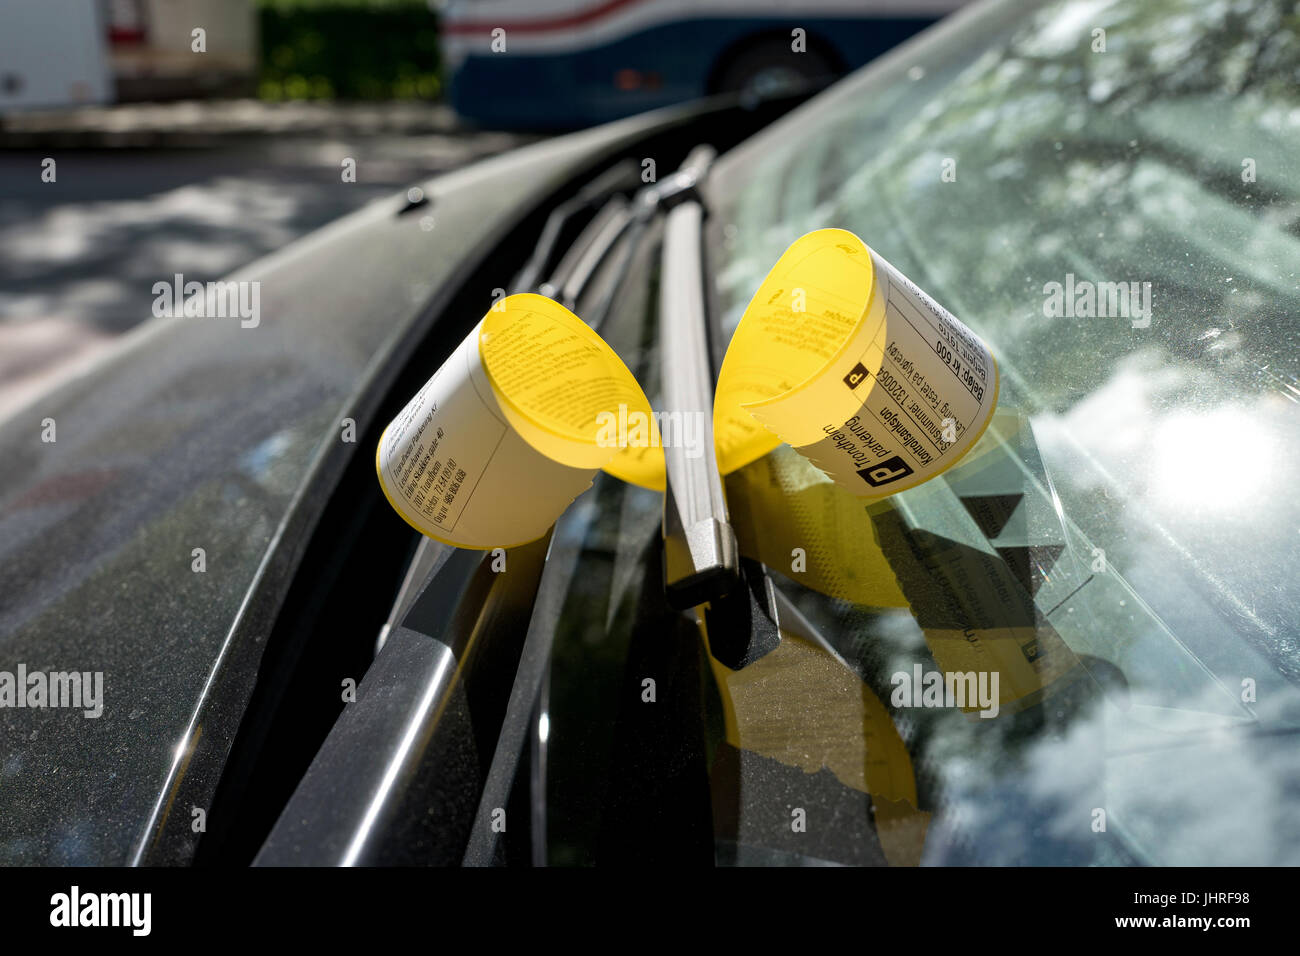 ticket for parking violation on a vehicle in Trondheim, Norway - Stock Image